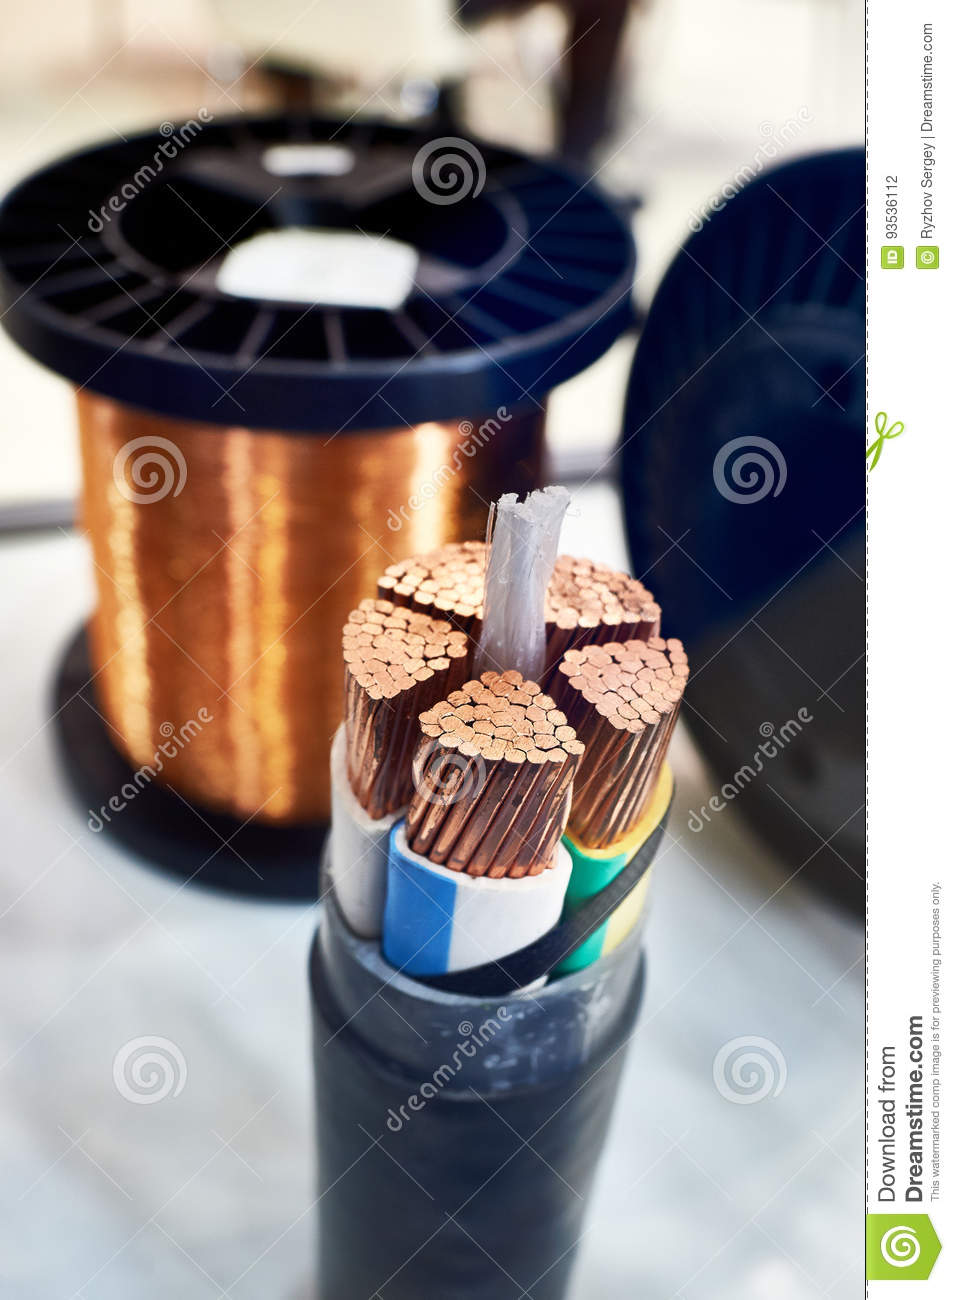 Large Copper Cable : Large copper power cable in section stock photo image